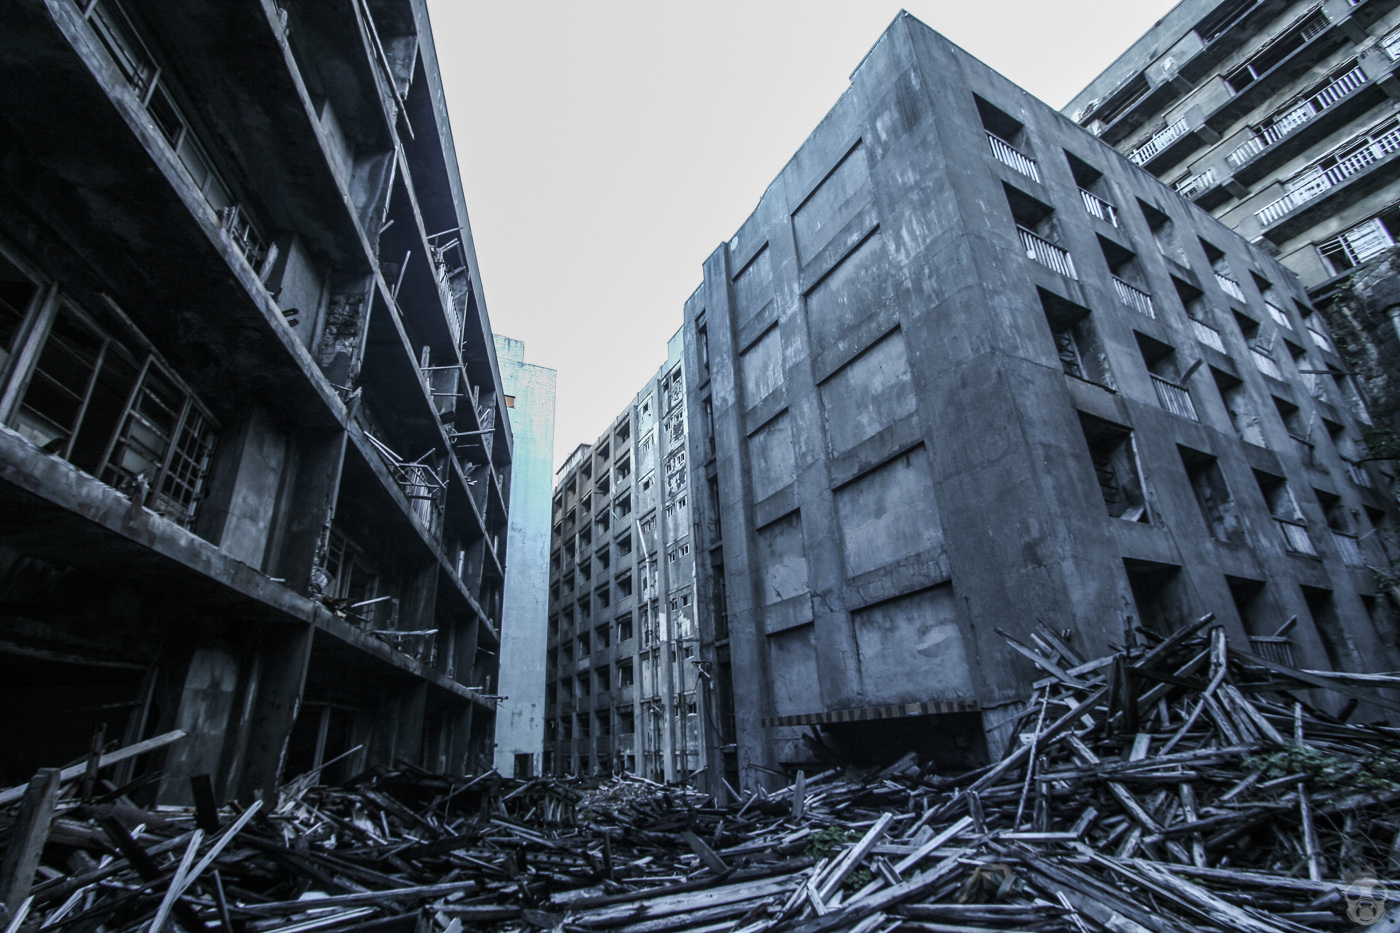 Hashima Island Pictures Of The Abandoned Japanese Ghost